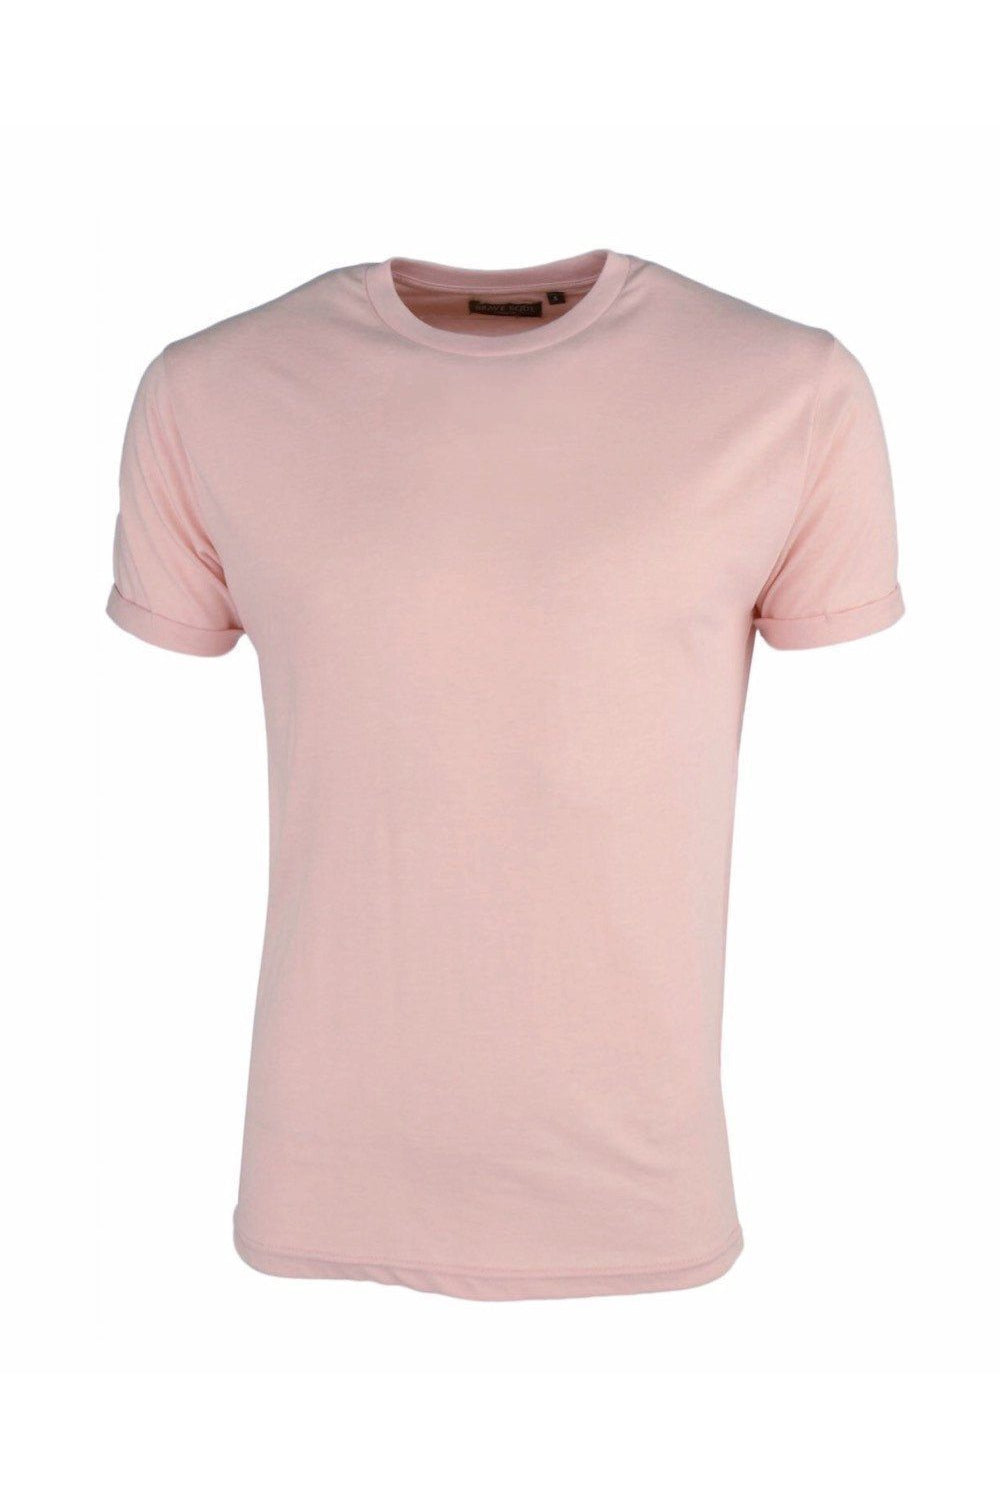 T-Shirts - Roll Sleeve T-Shirt Dusty Pink